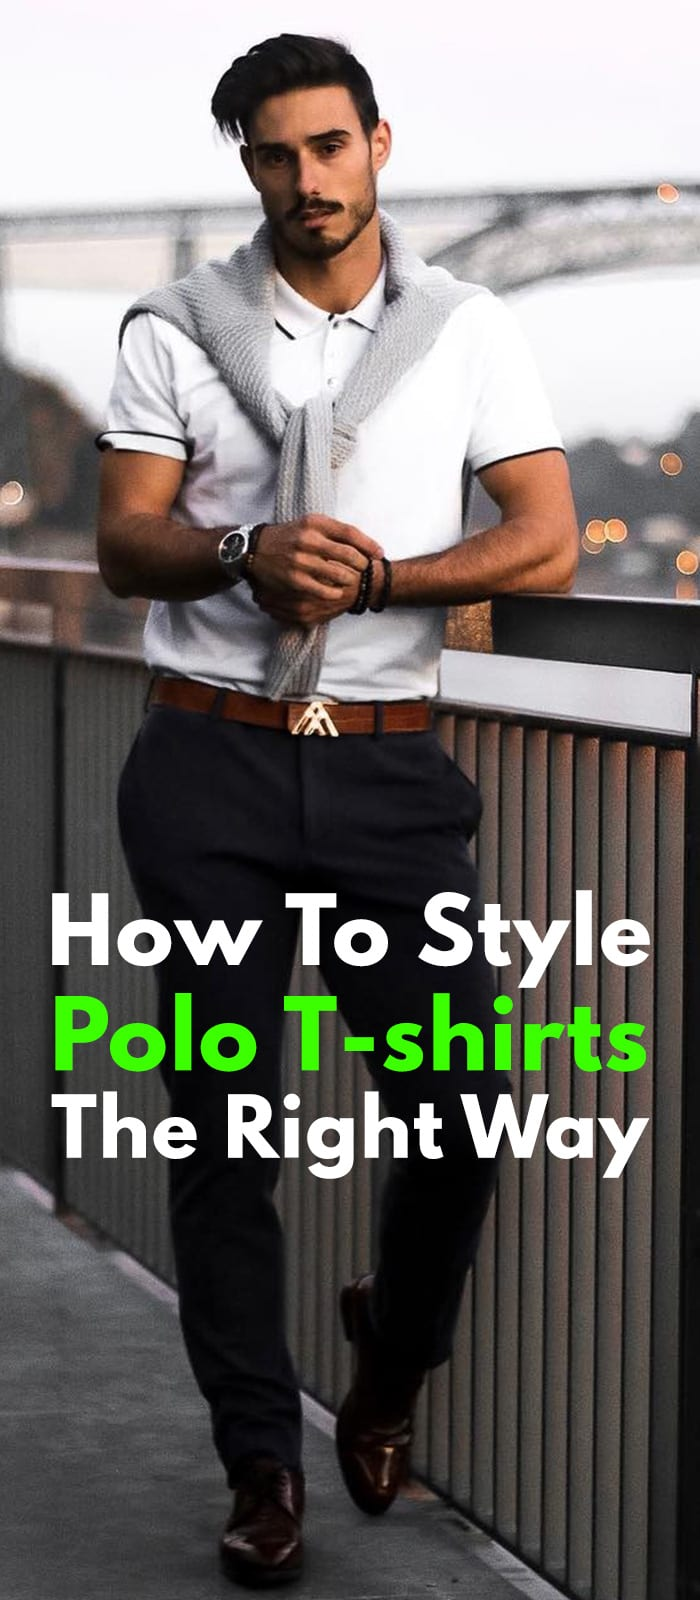 How To Style Polo T-shirts The Right Way.